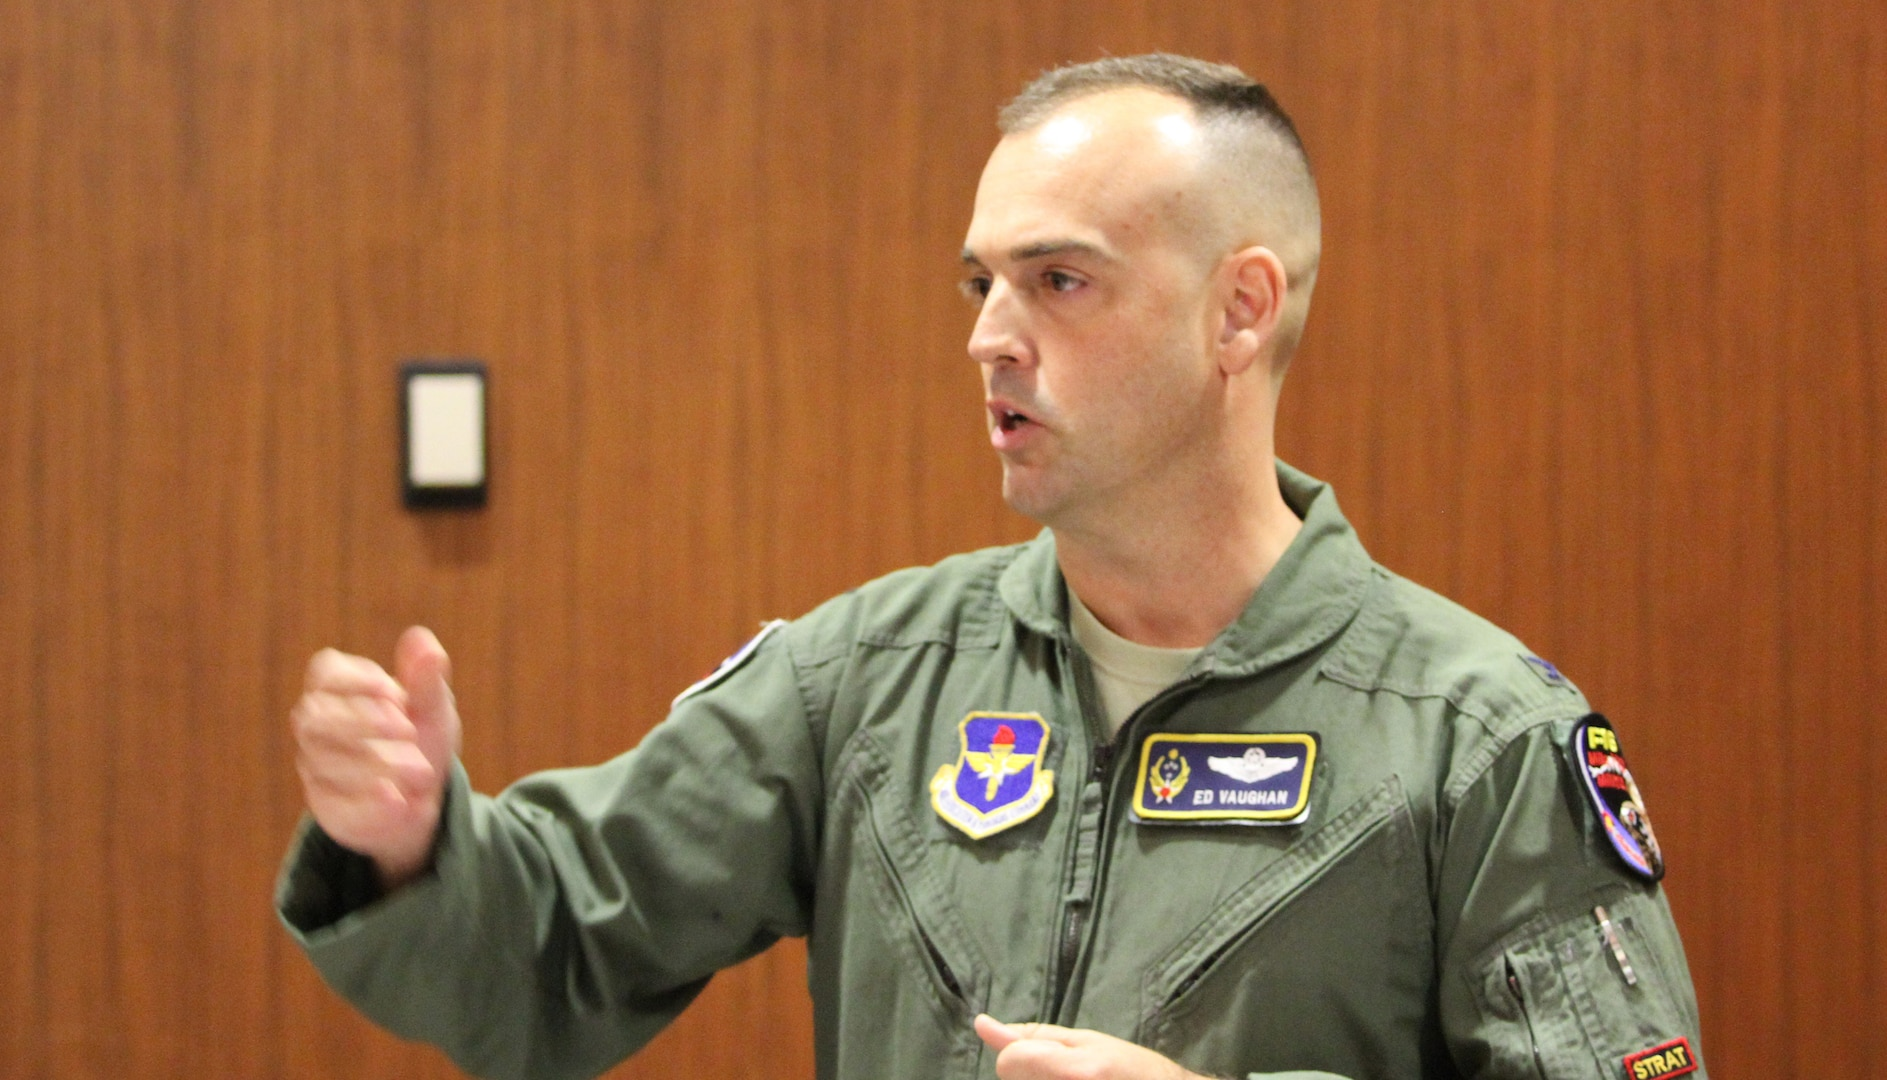 """Colorado Air National Guard Col. Edward Vaughan, co-founder of the Guard and Reserve Network, or GARNET, delivers his pitch to the judges Jan. 23, 2013, in a series of 60-second """"elevator pitches."""" GARNET sponsored this first-ever Air University Pitch-Fest, held at the Air War College. Military members and veterans received constructive feedback after pitching their big idea, their qualifications for their next job or any other topic they chose. (U.S. Air Force photo by Scot Talcot/RELEASED"""